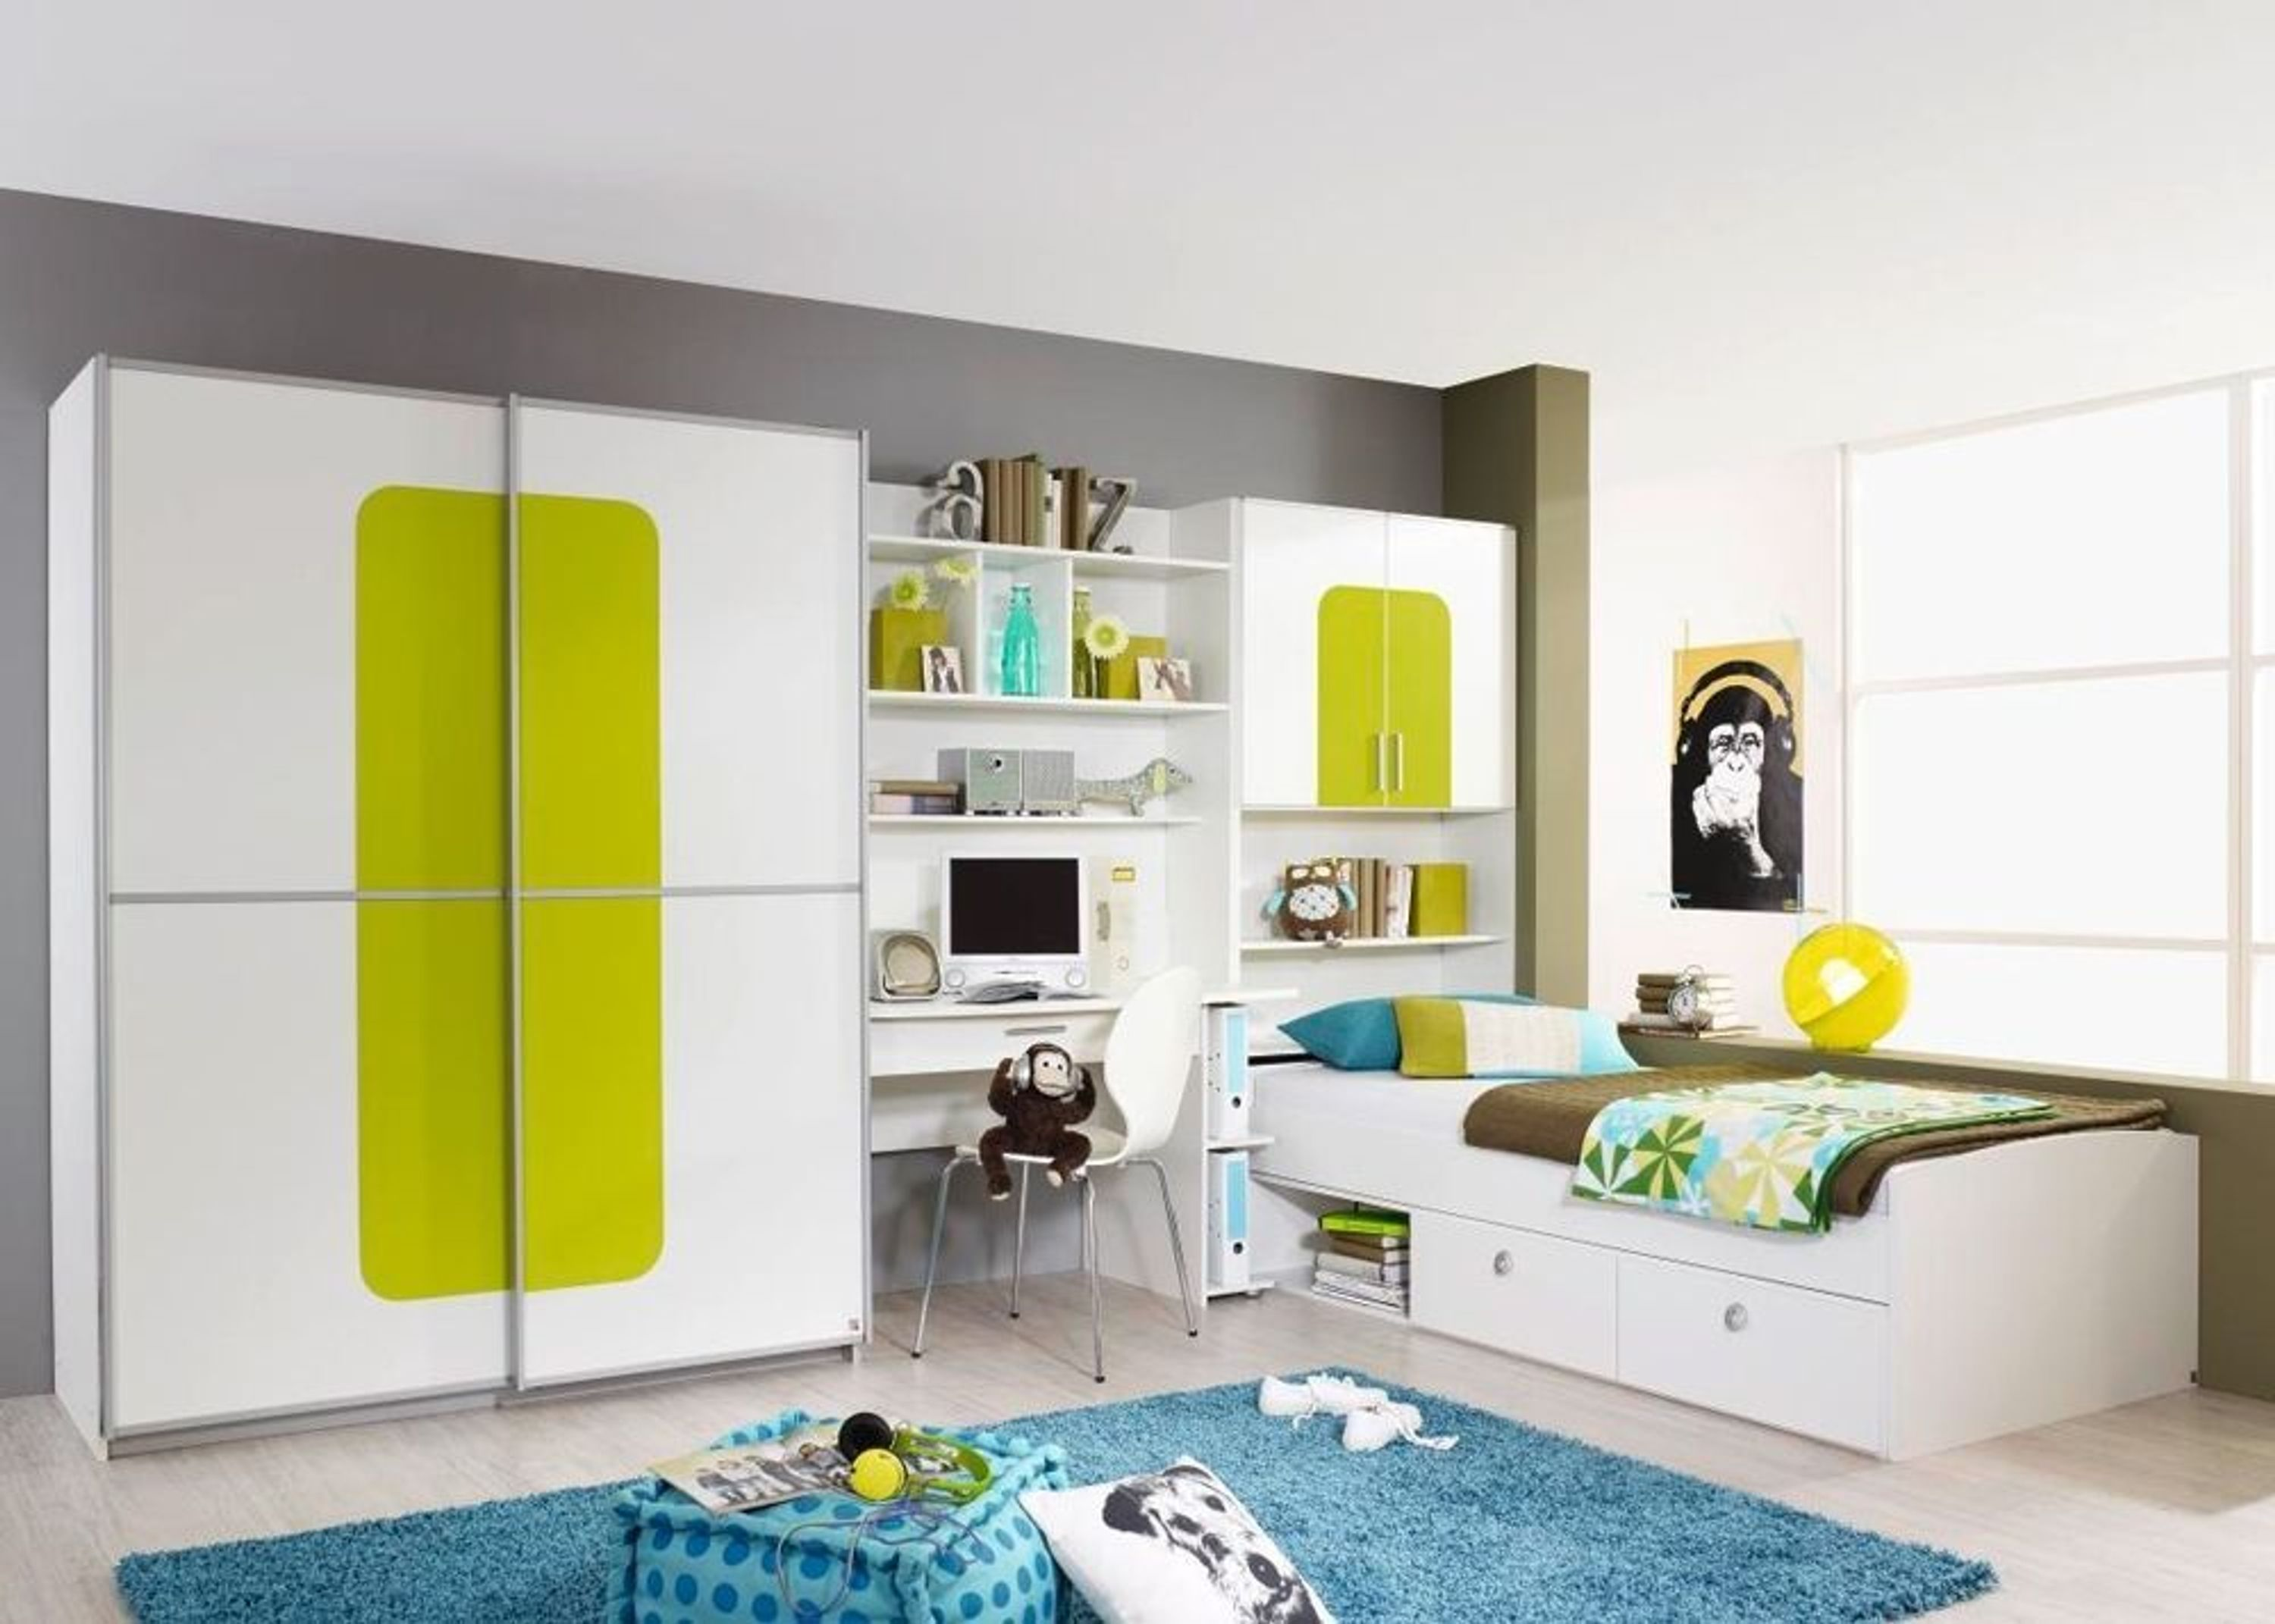 jugendzimmer komplett utah kinderzimmer 5 teilig wei gr n 8452 kaufen bei. Black Bedroom Furniture Sets. Home Design Ideas